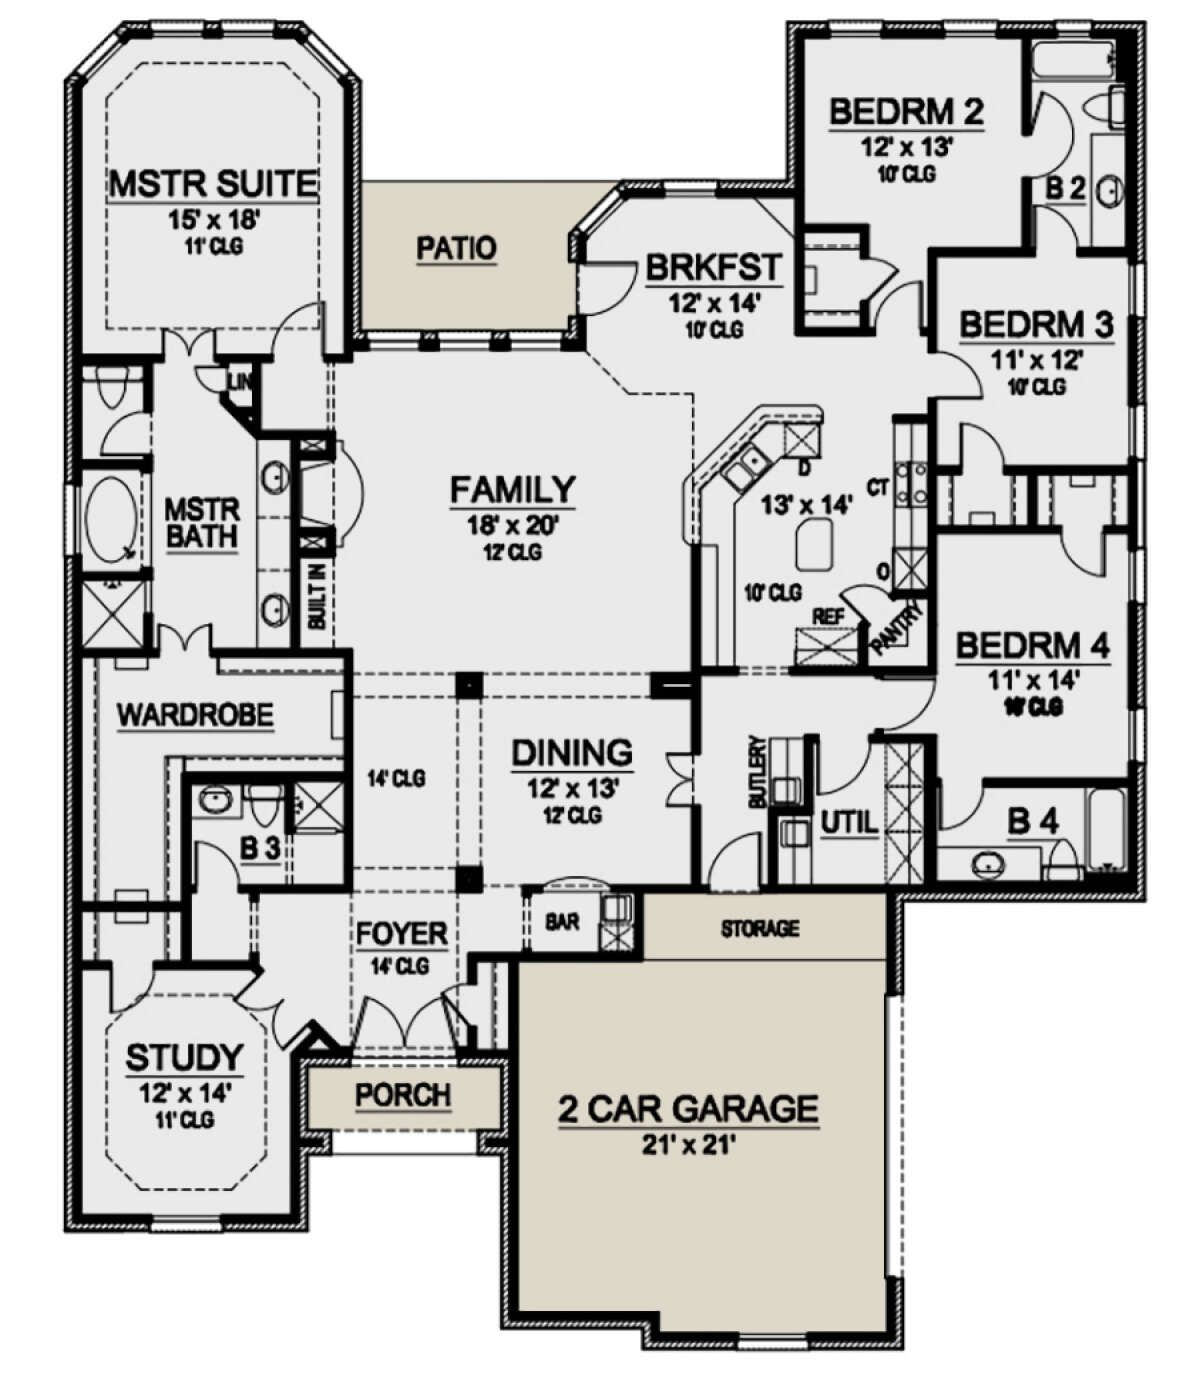 House Plan 5445 00394 European Plan 2 799 Square Feet 4 Bedrooms 4 Bathrooms In 2021 European Plan House Plans European House Plan